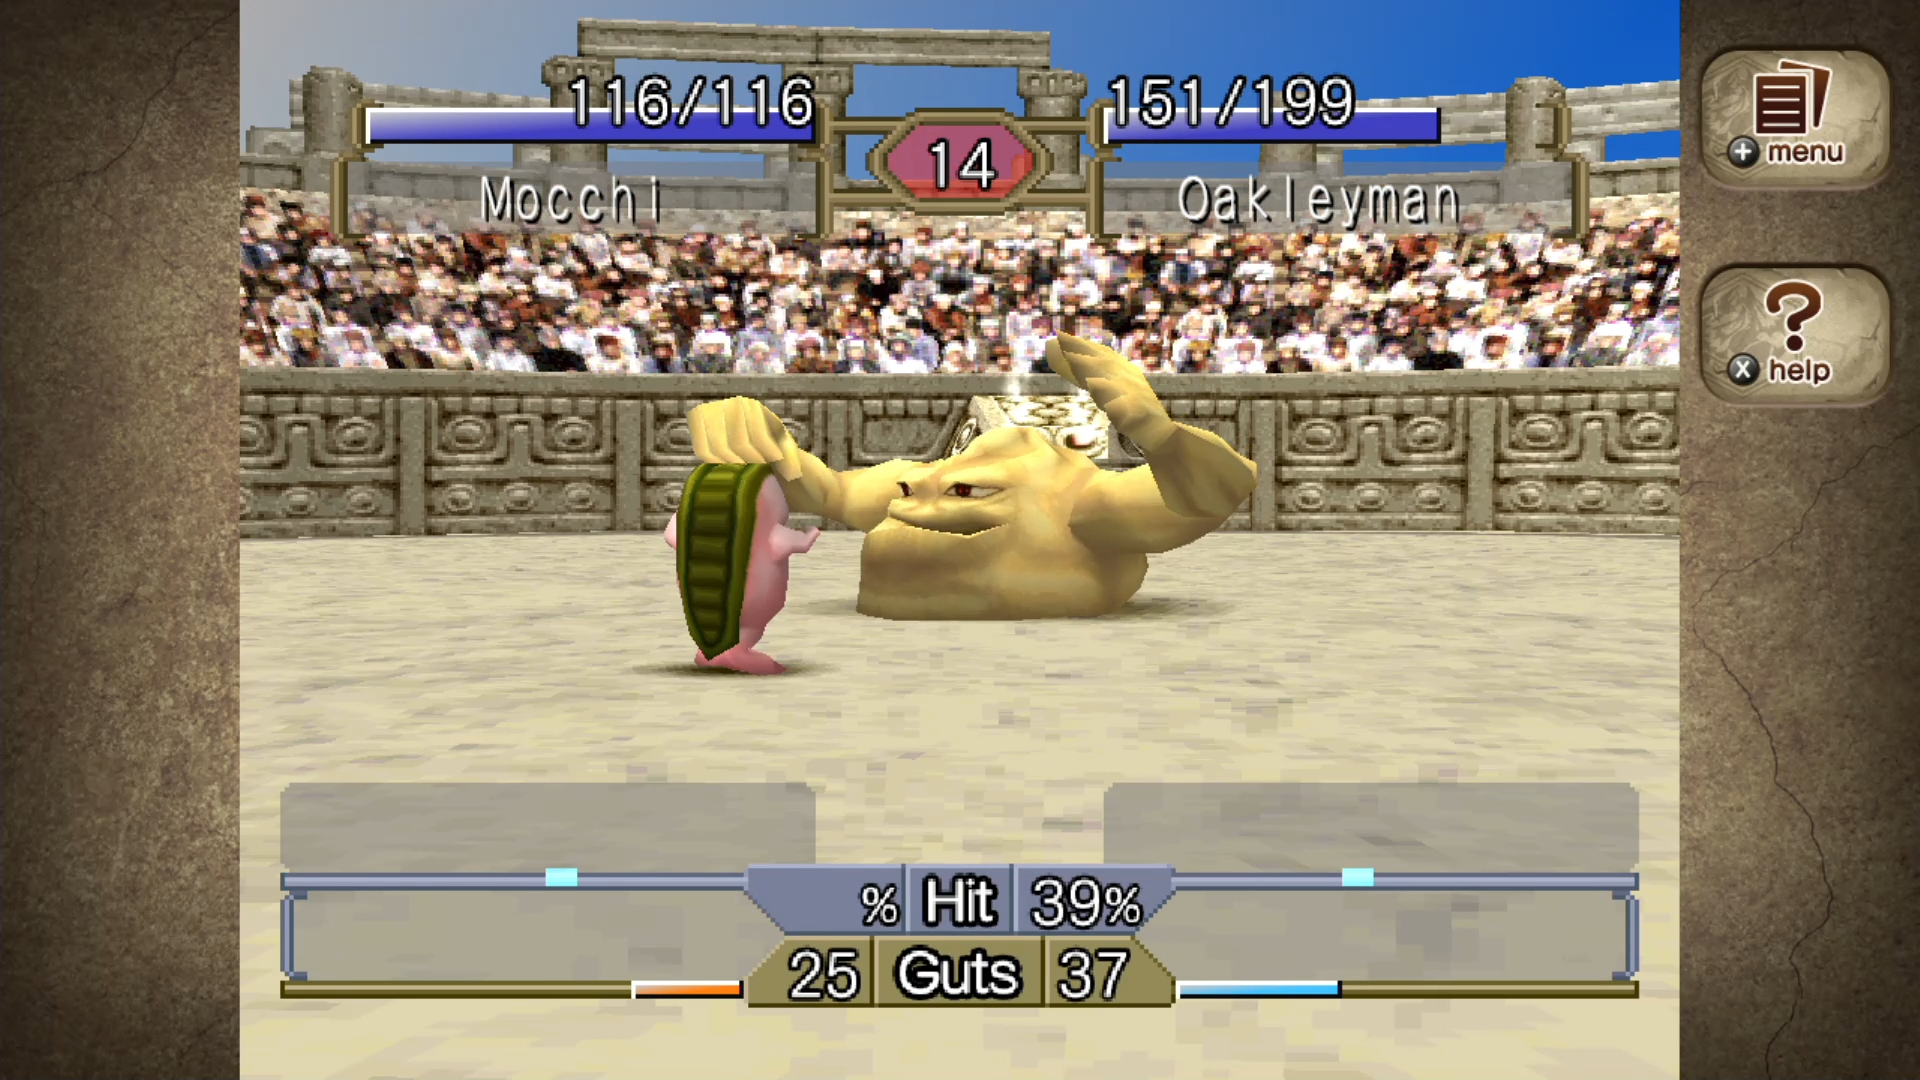 two monsters facing each other down in a fight in a stadium in Monster Rancher